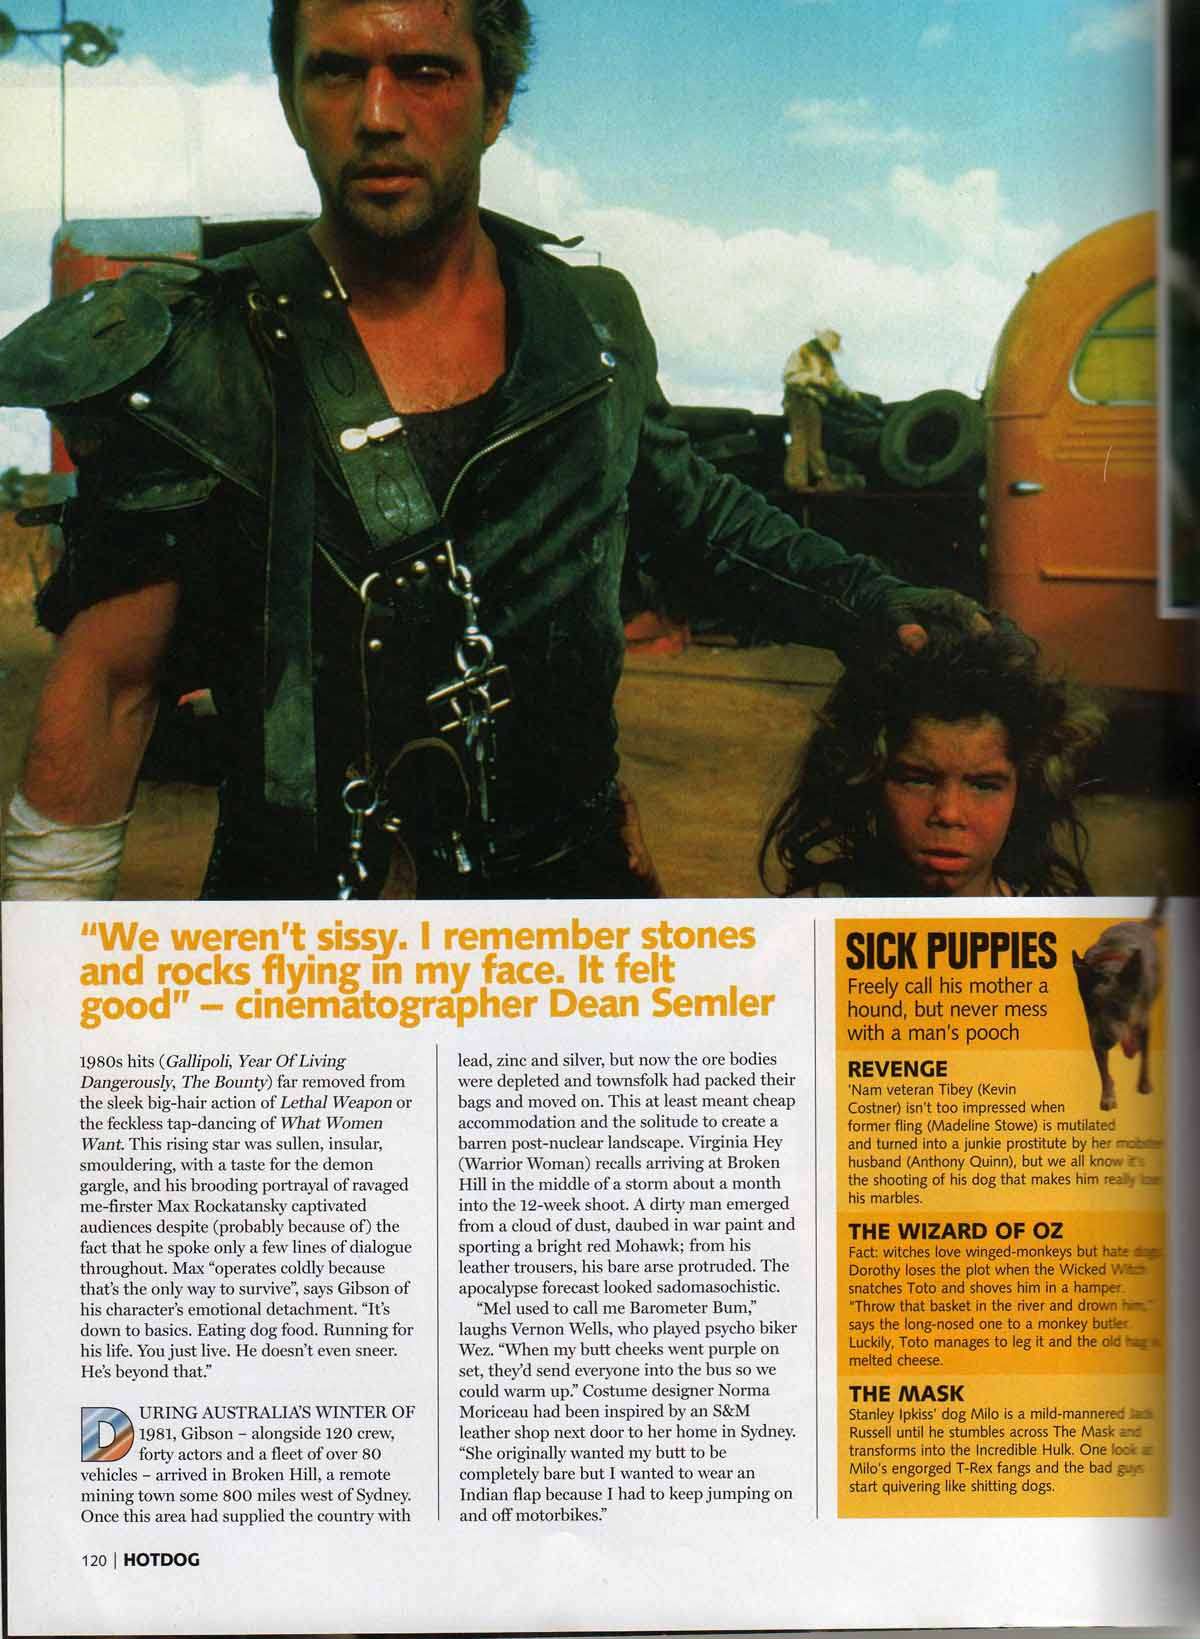 Mad Max Publicity Material Archive - Mens Magazine Archive